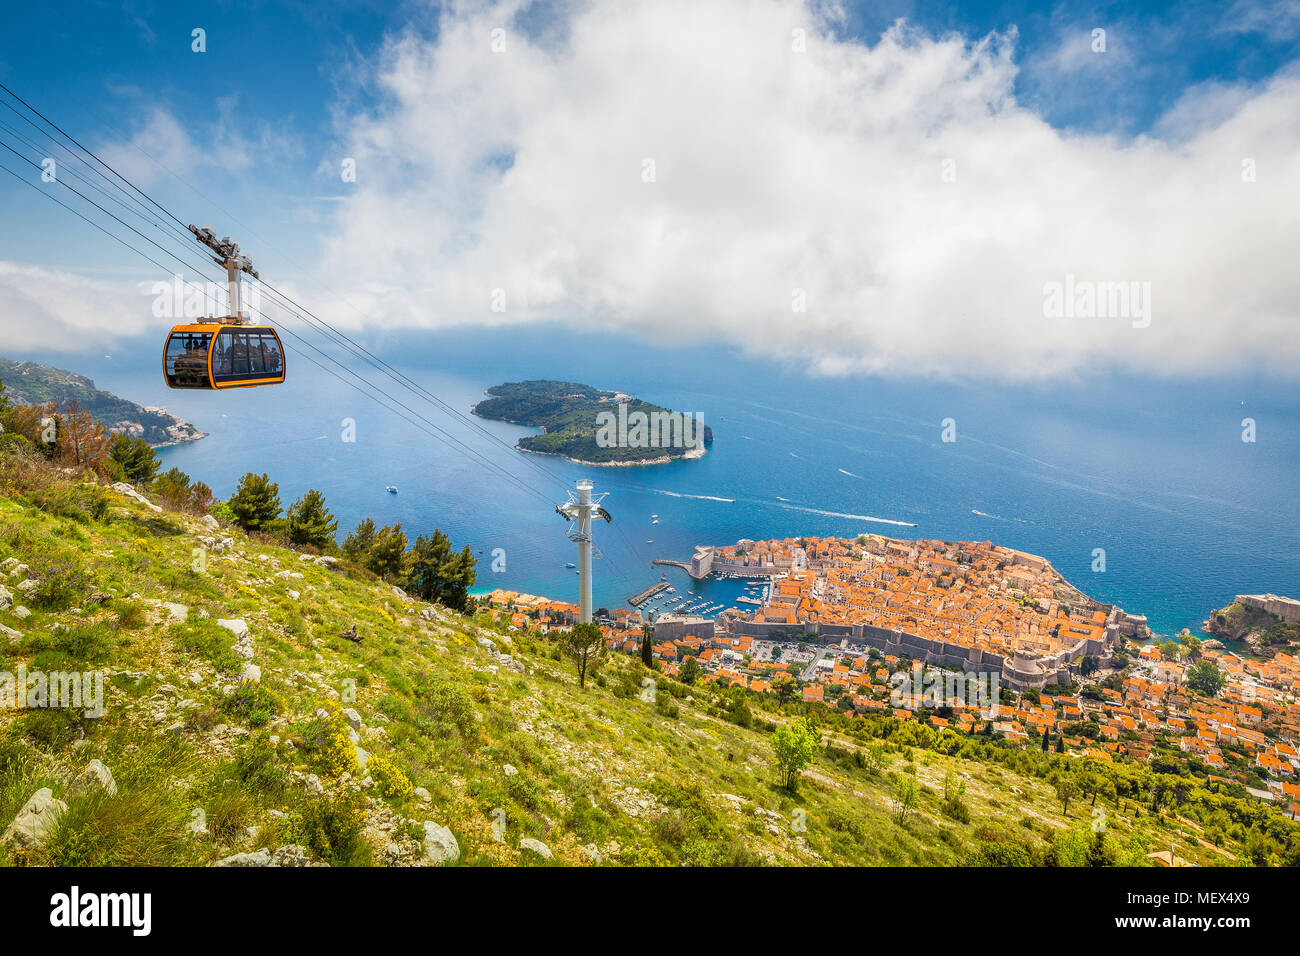 Aerial panoramic view of the old town of Dubrovnik with famous Cable Car on Srd mountain on a sunny day with blue sky and clouds in summer, Croatia - Stock Image